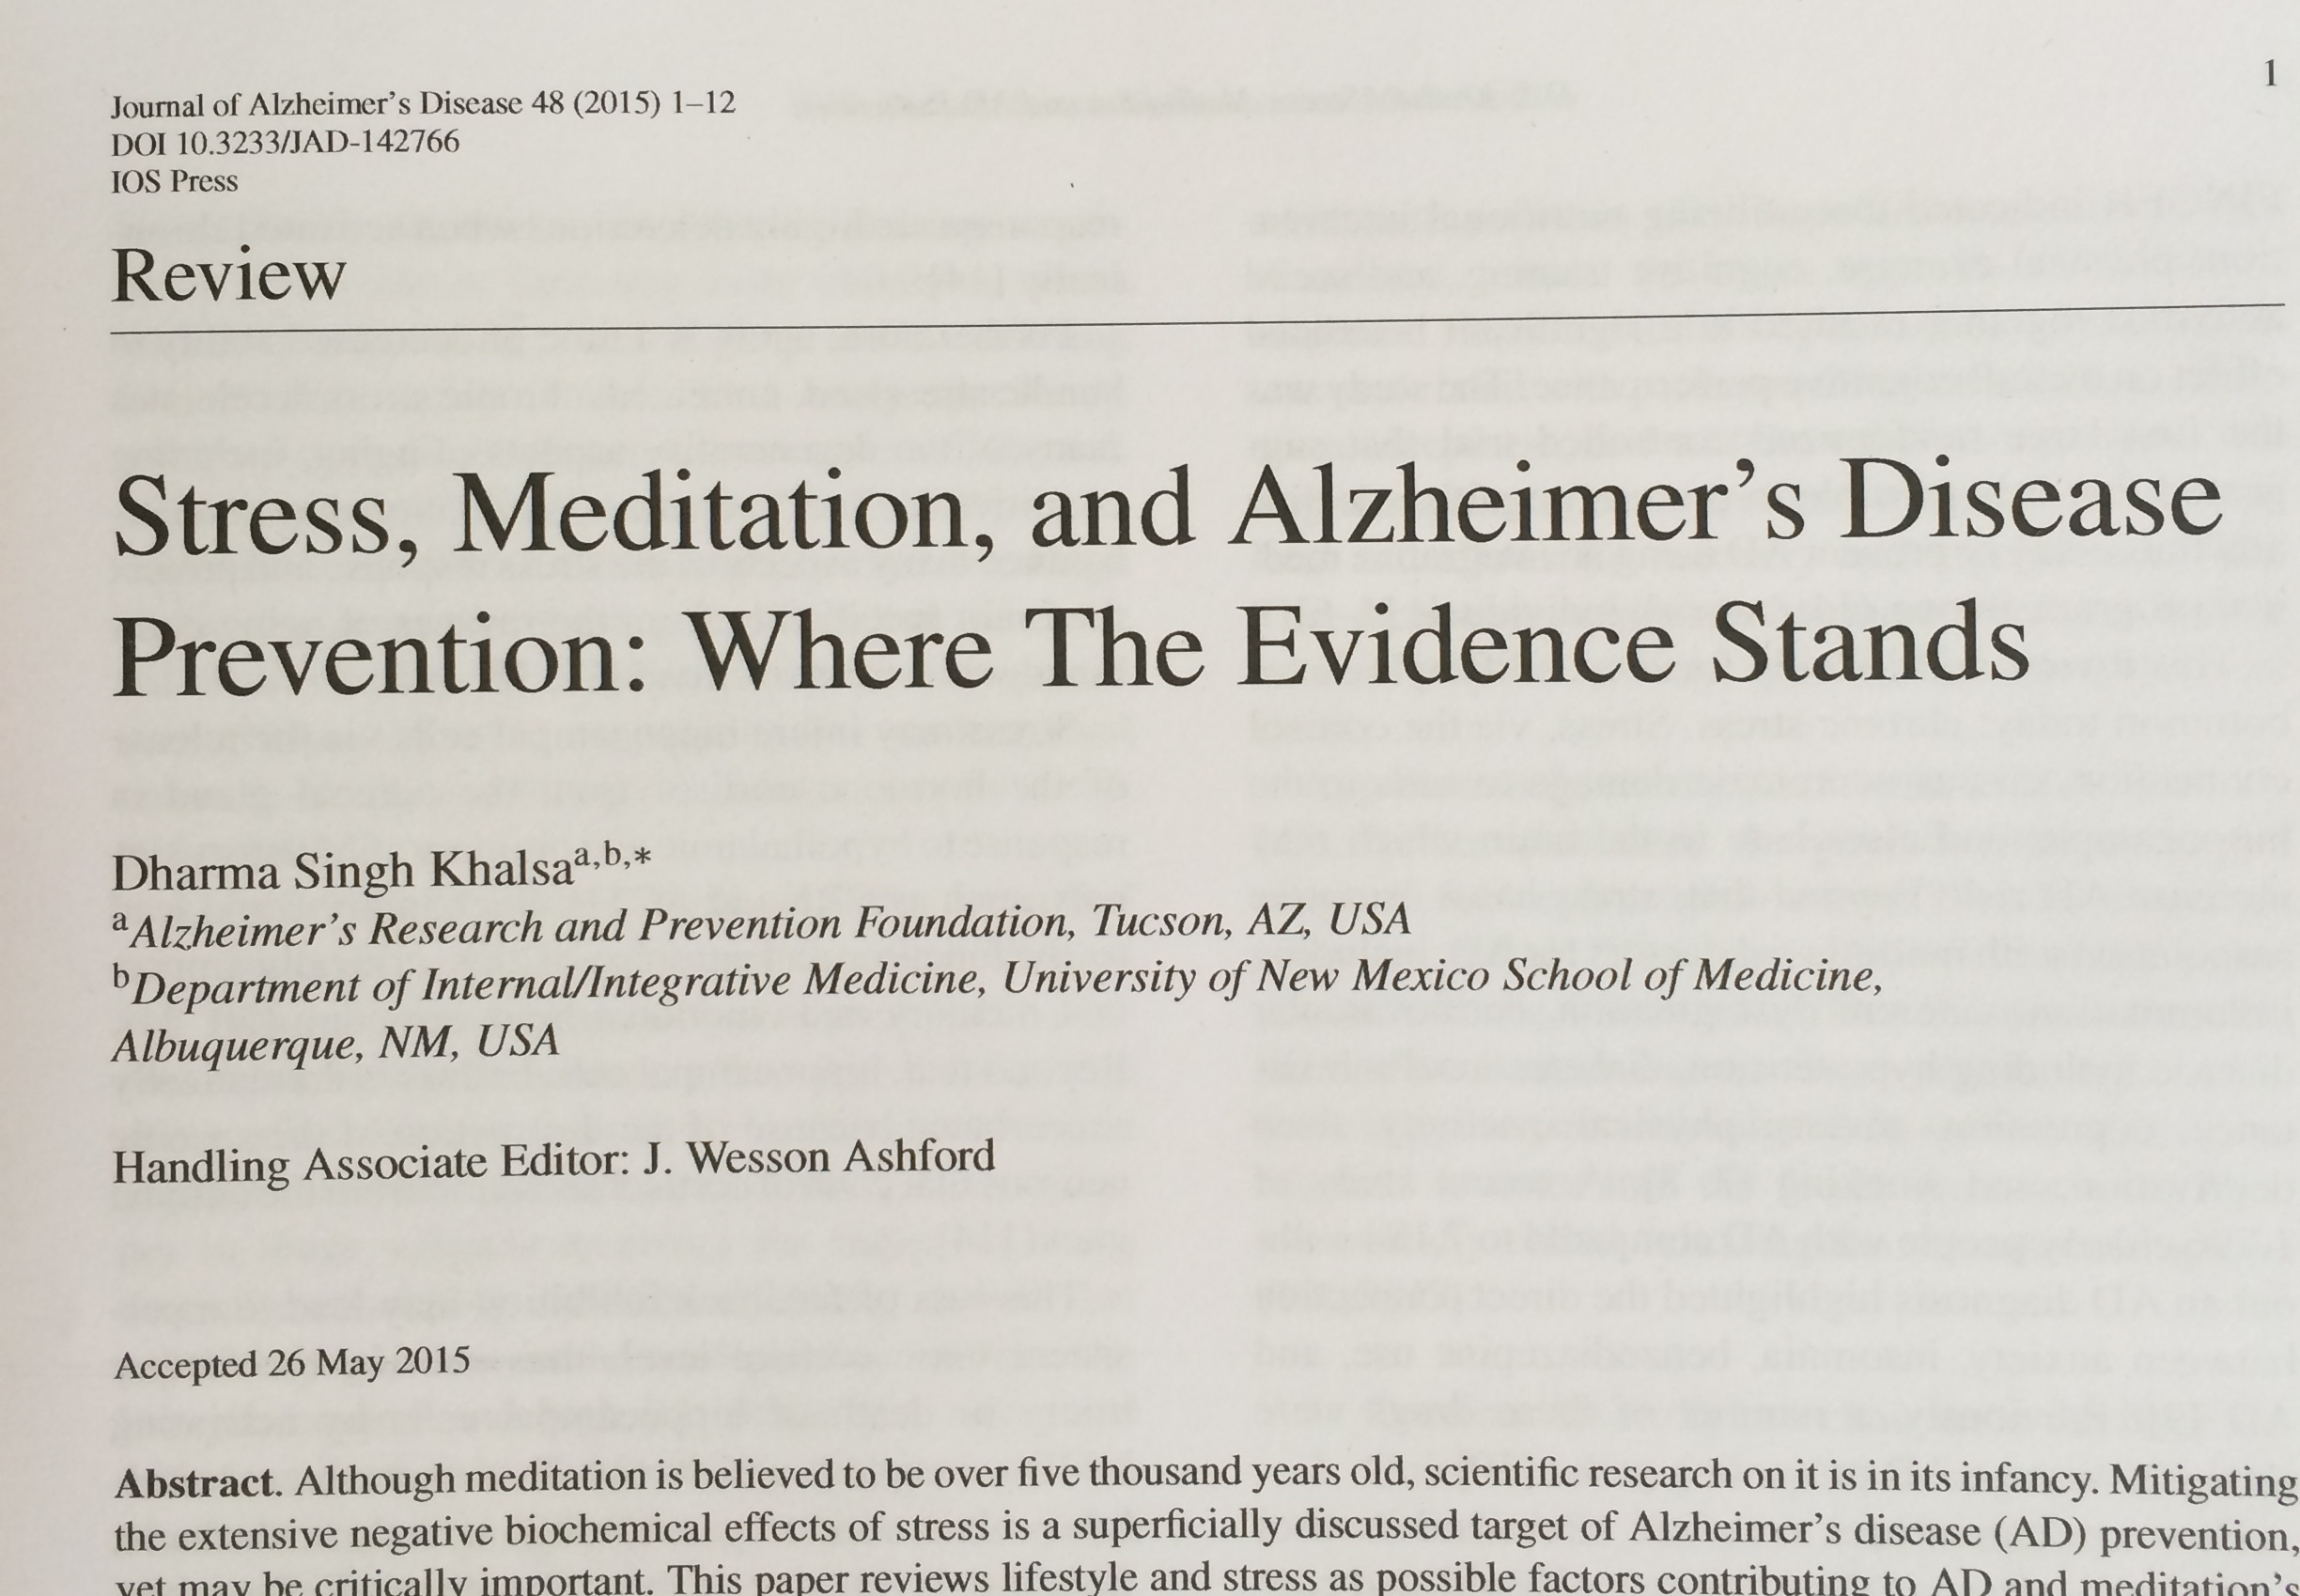 001 Abstract Alzheimers Research Paper Stress Article Exceptional Alzheimer's Full